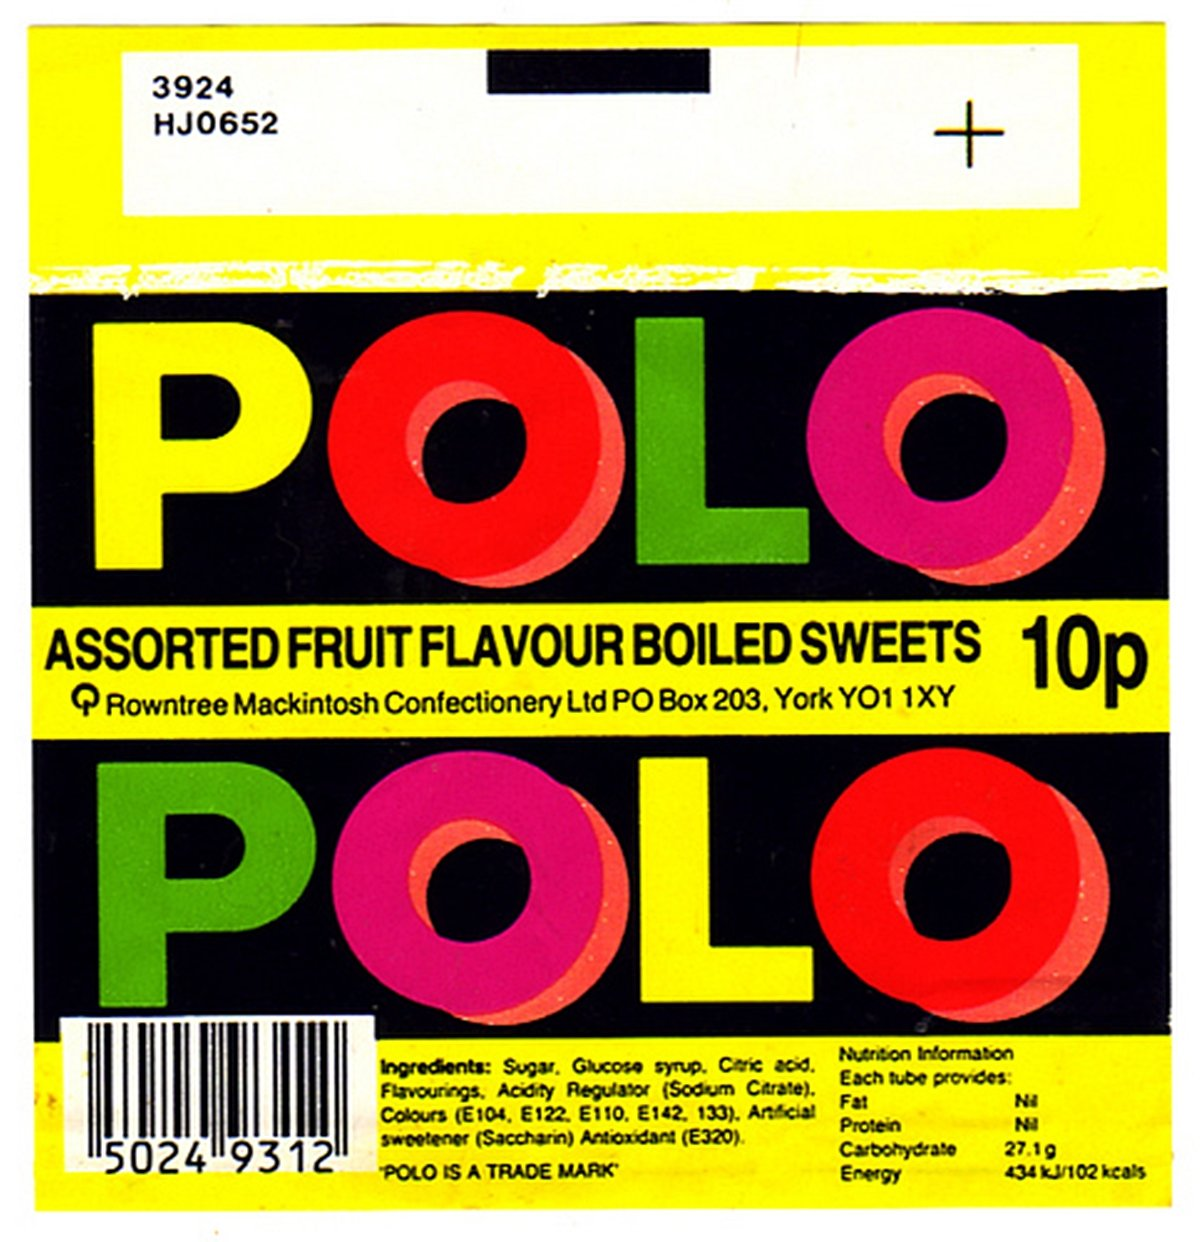 10 12 12 Childhood Sweets You've Probably Forgotten About